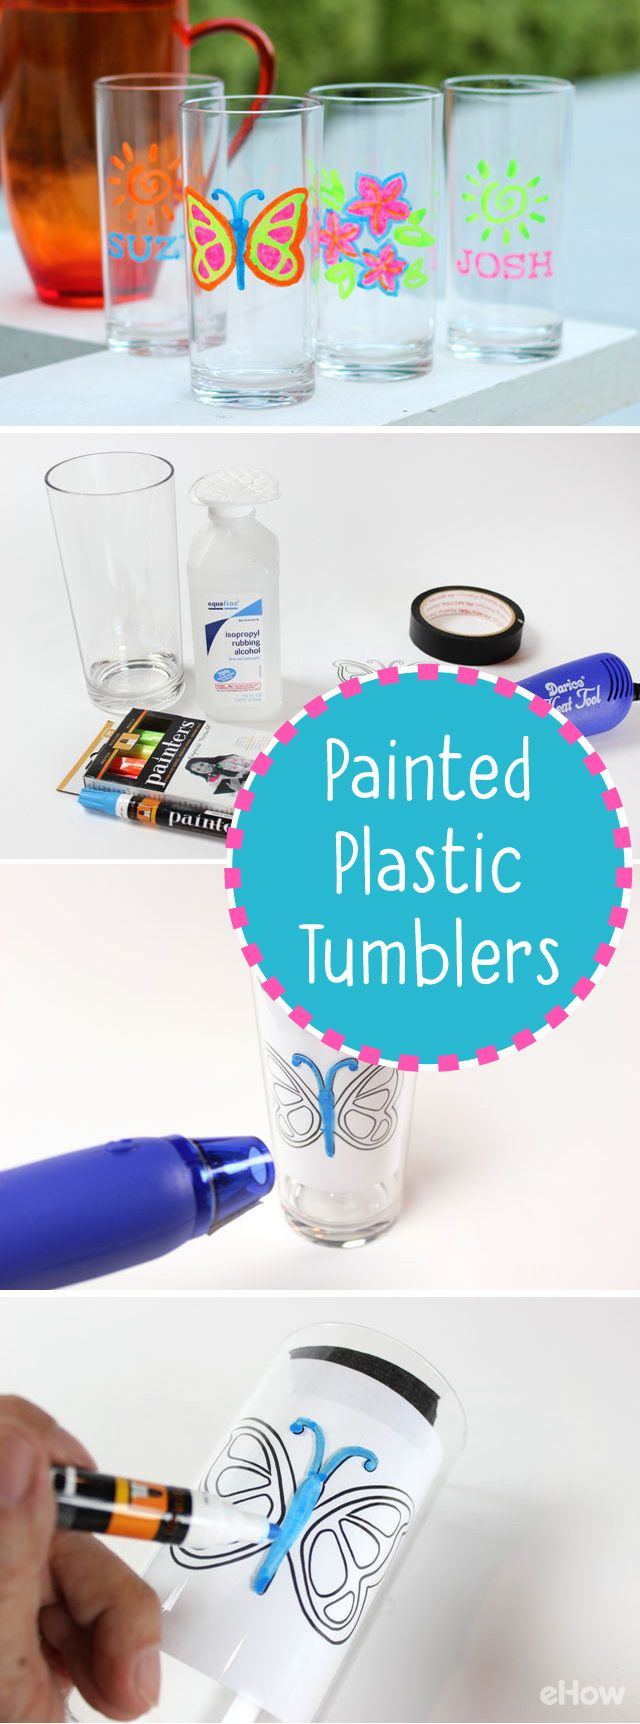 Plastic tumblers are a smart alternative to glassware because you don't have to worry about breakage or wasting paper cups! And by using acrylic paint markers, they are also fun and easy to paint so that everyone at the party can have a tumbler personalized just for them.  http://www.ehow.com/how_12067997_painting-plastic-tumblers.html?utm_source=pinterest.com&utm_medium=referral&utm_content=curated&utm_campaign=fanpage